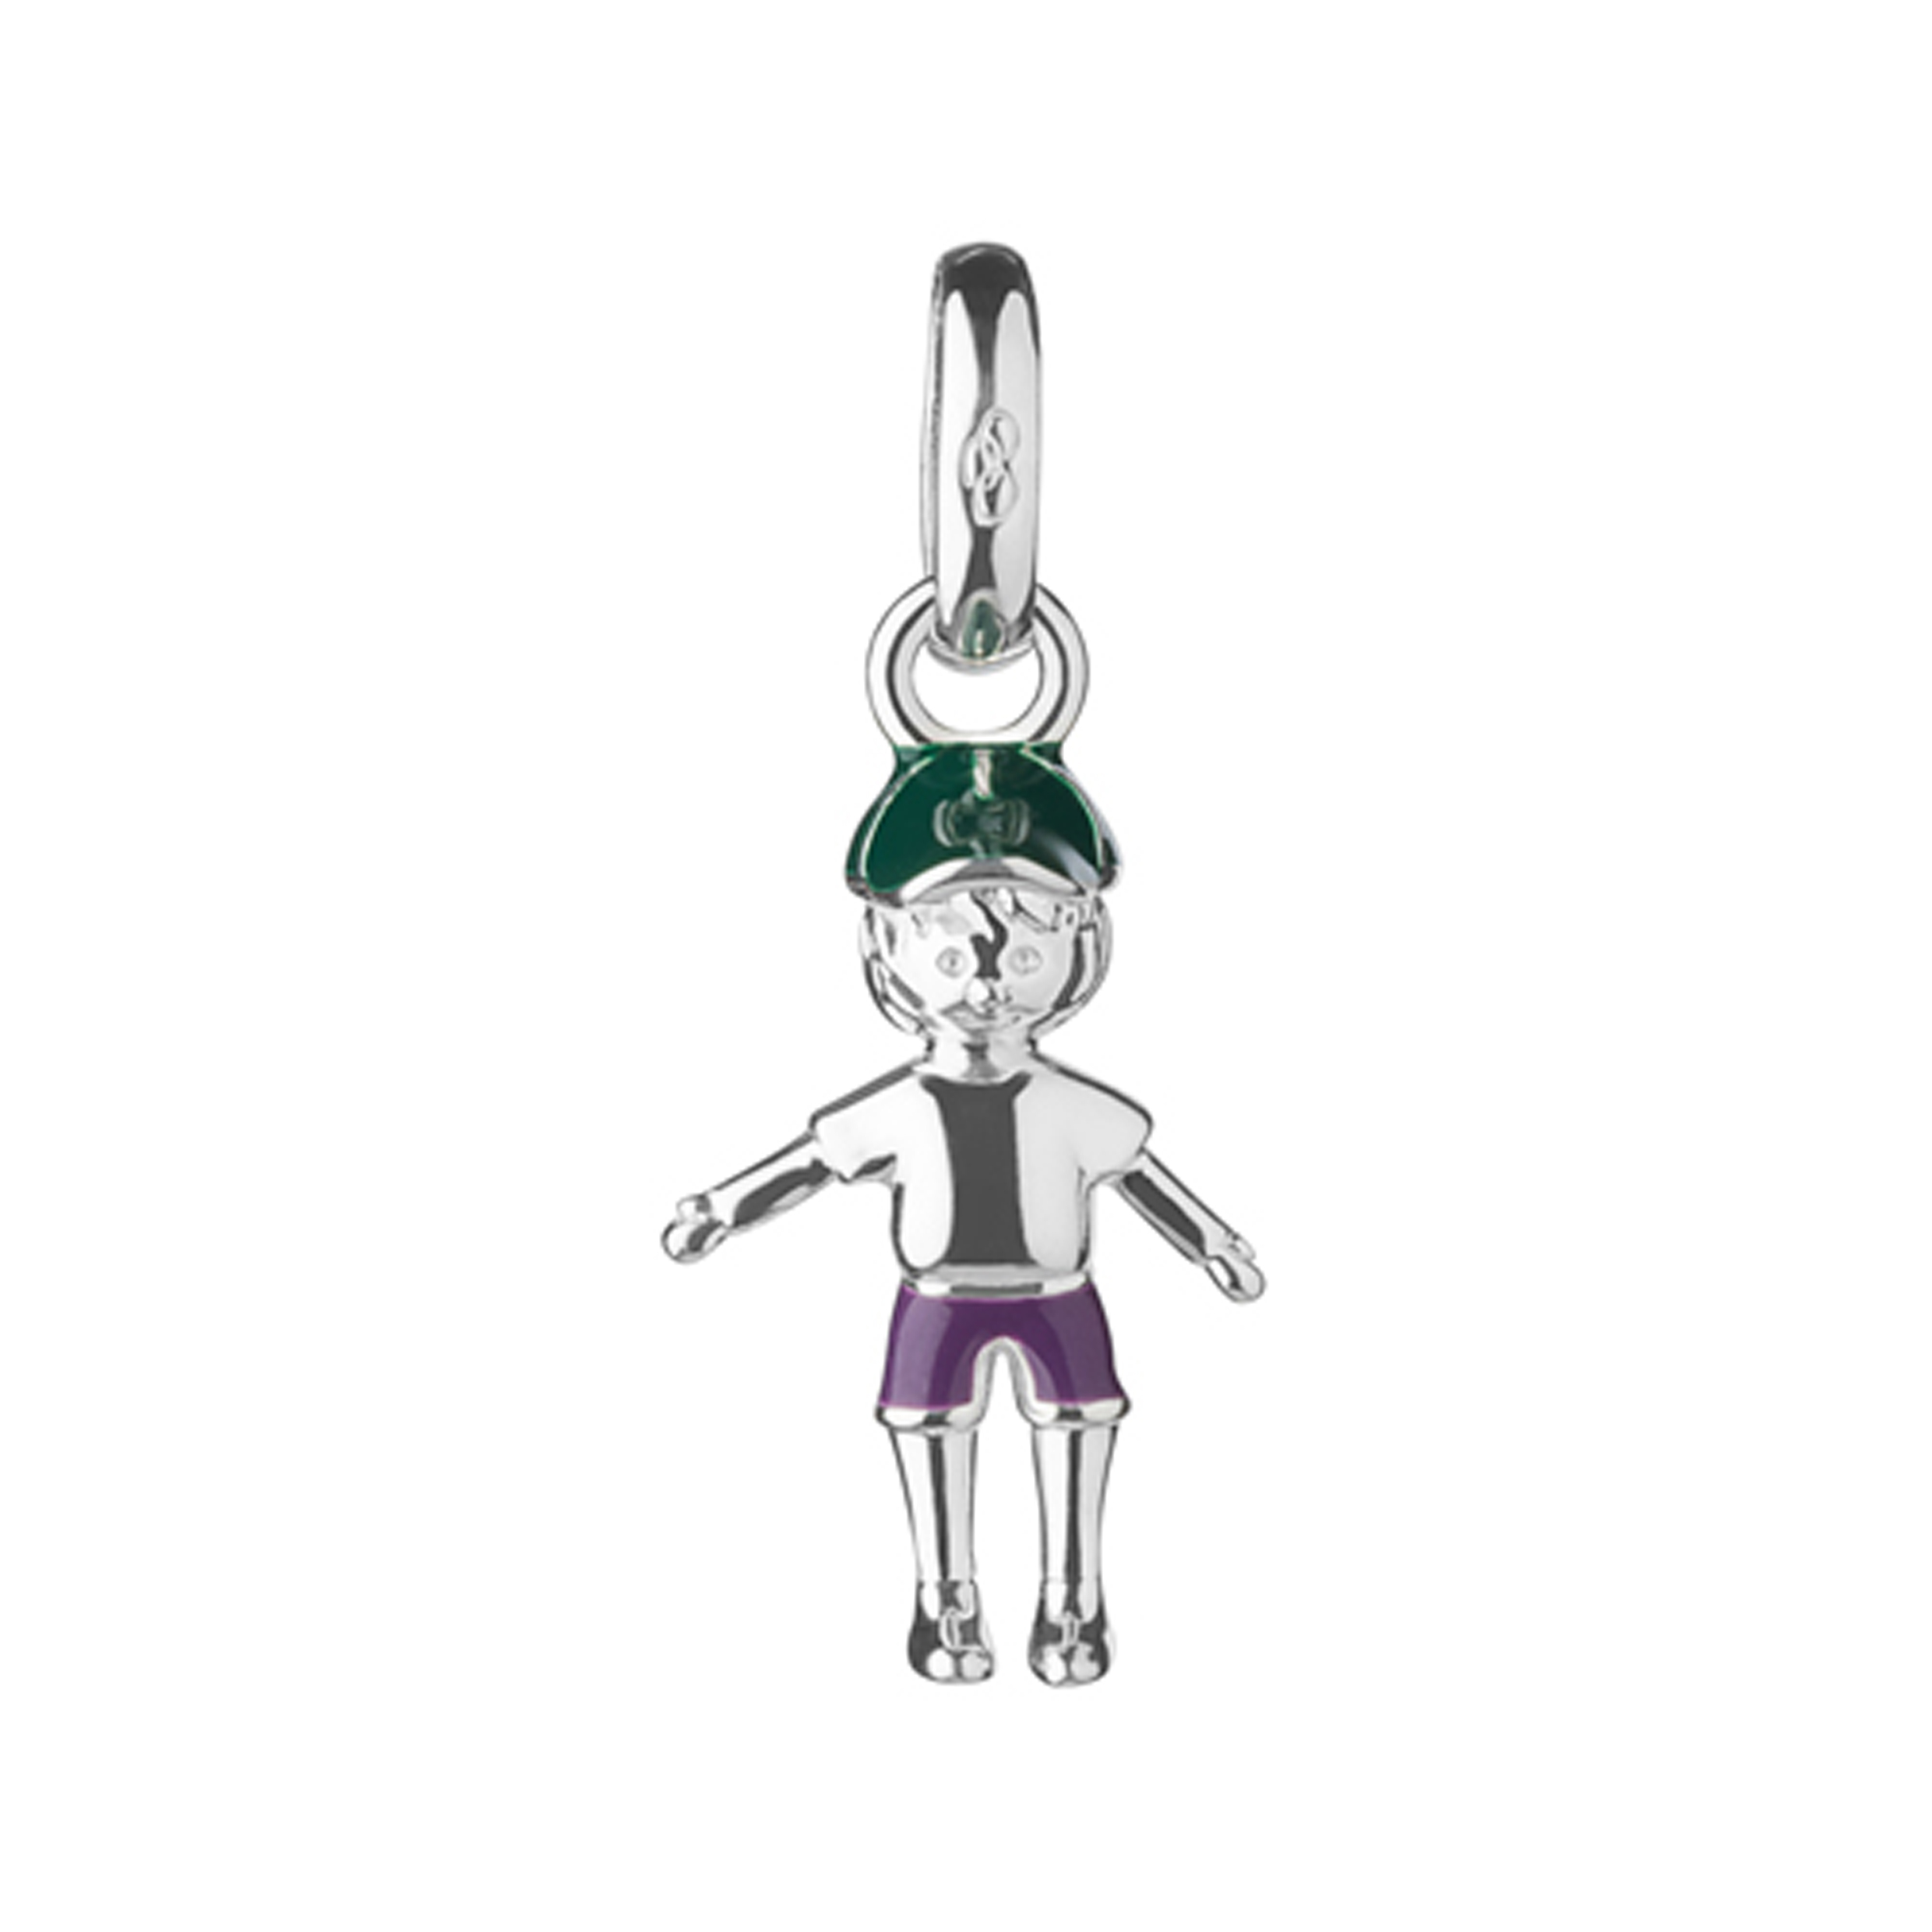 Wimbledon Ball Boy Charm